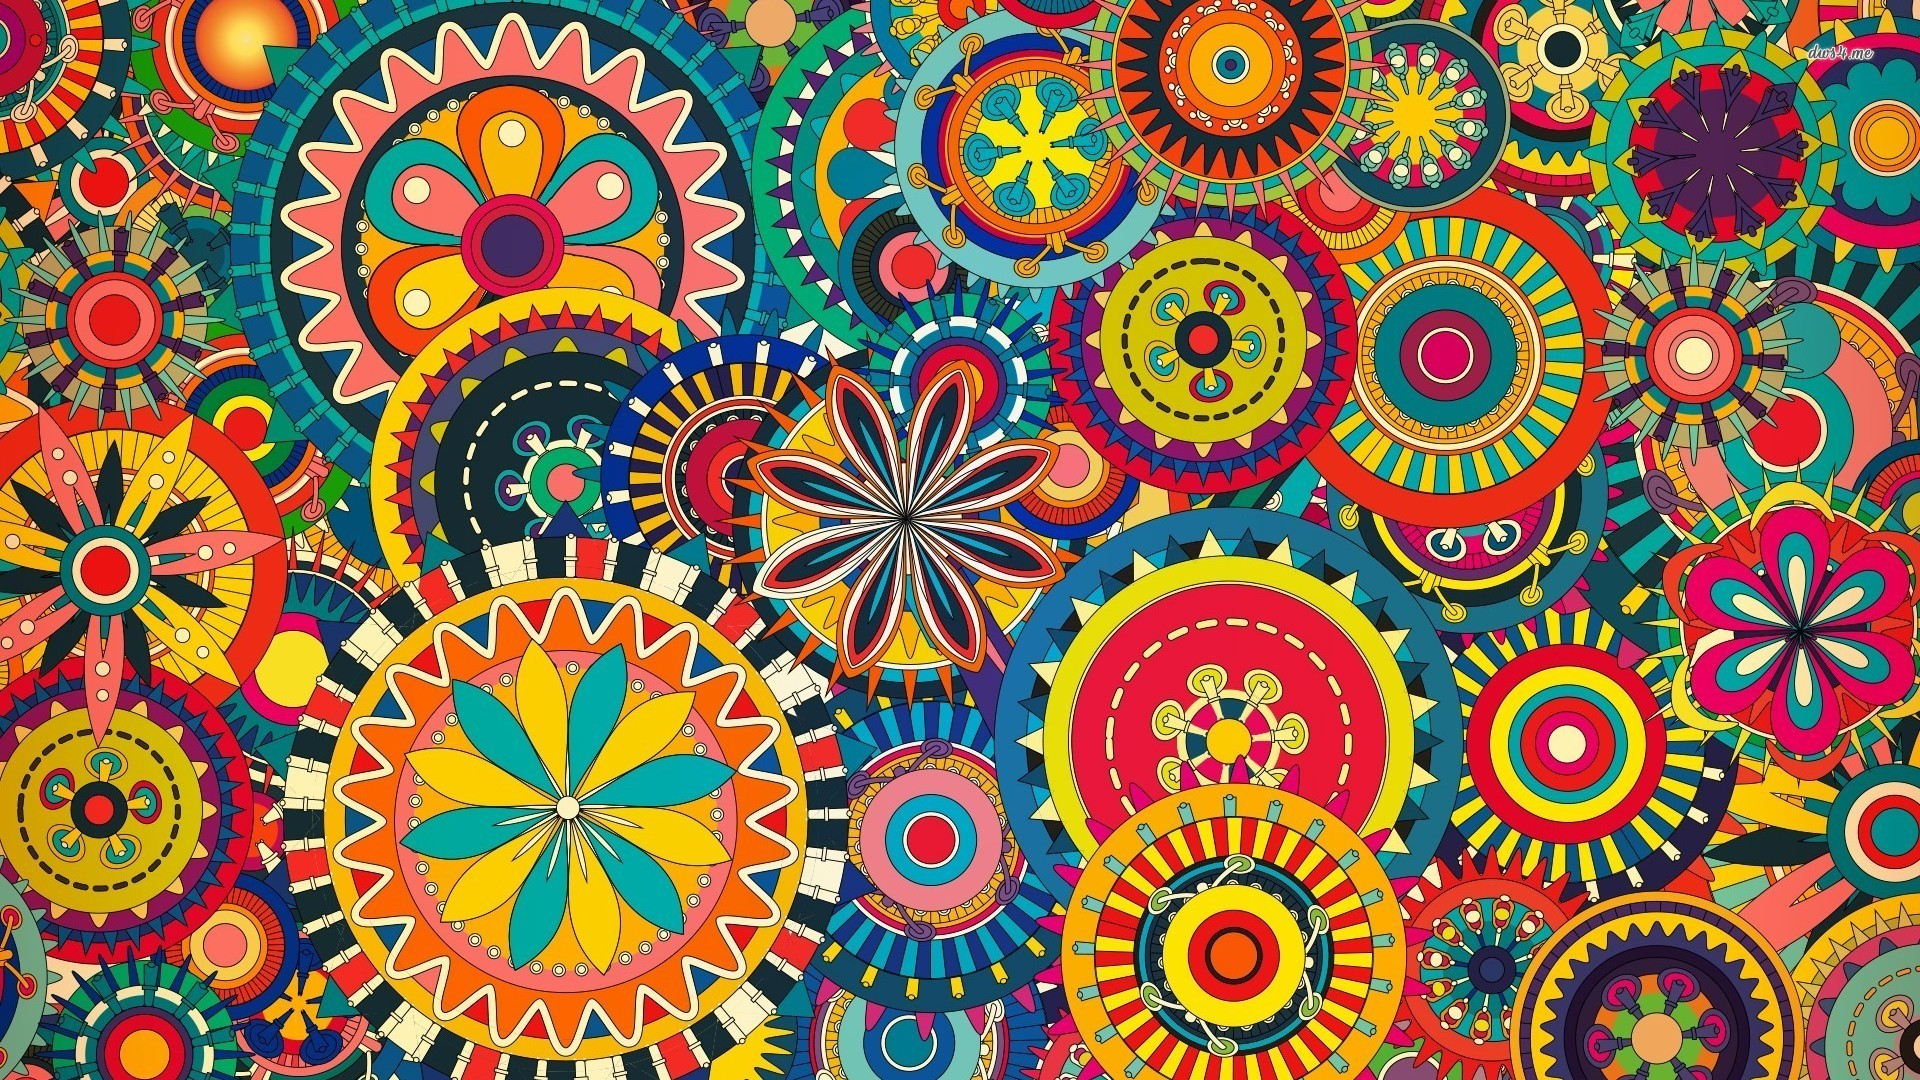 1920x1080 Colorful Aztec Mobile Wallpaper High Resolution Wallpaper  px  957.08 KB